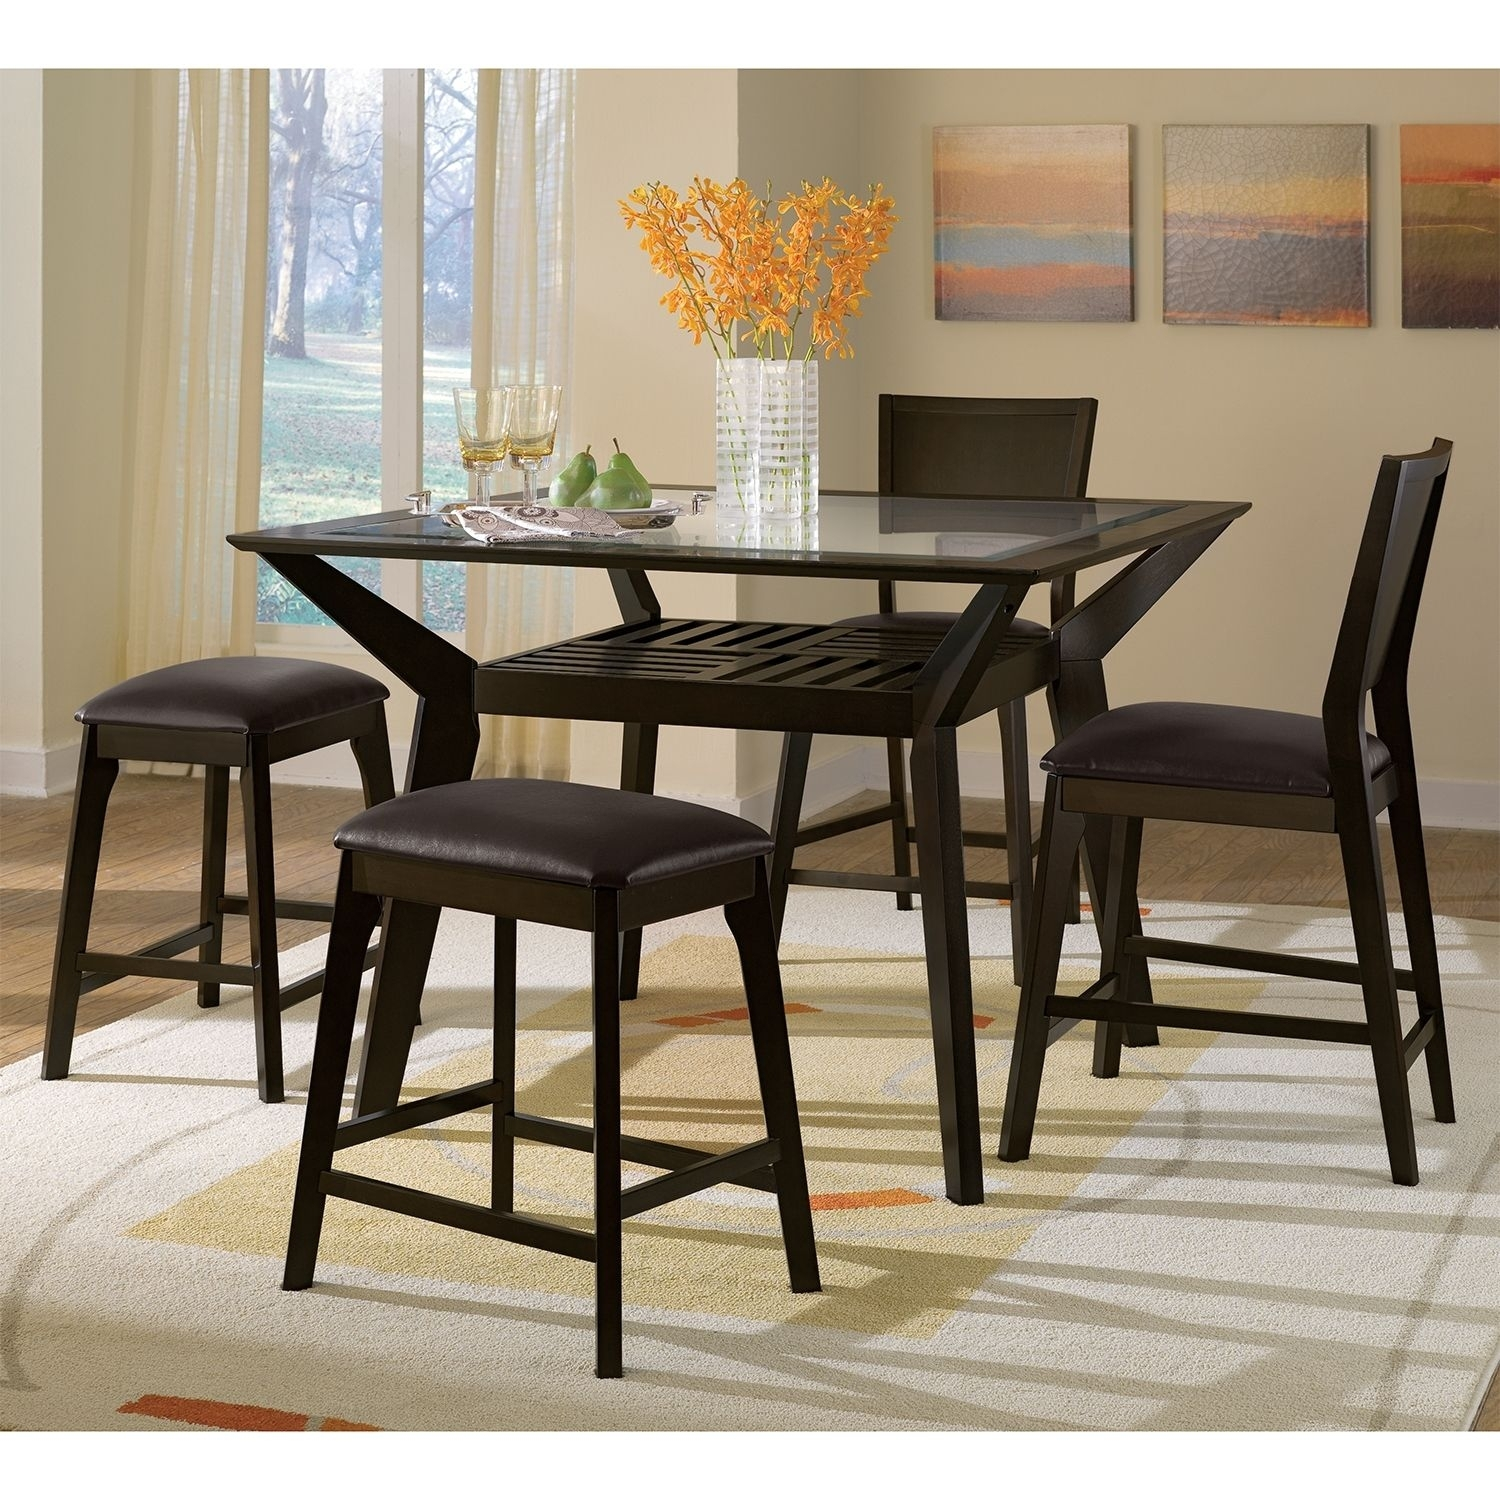 Mystic 5 Pc. Counter Height Dinette W/ 2 Backless Stools | Value Regarding Latest Norwood 6 Piece Rectangular Extension Dining Sets With Upholstered Side Chairs (Photo 10 of 20)